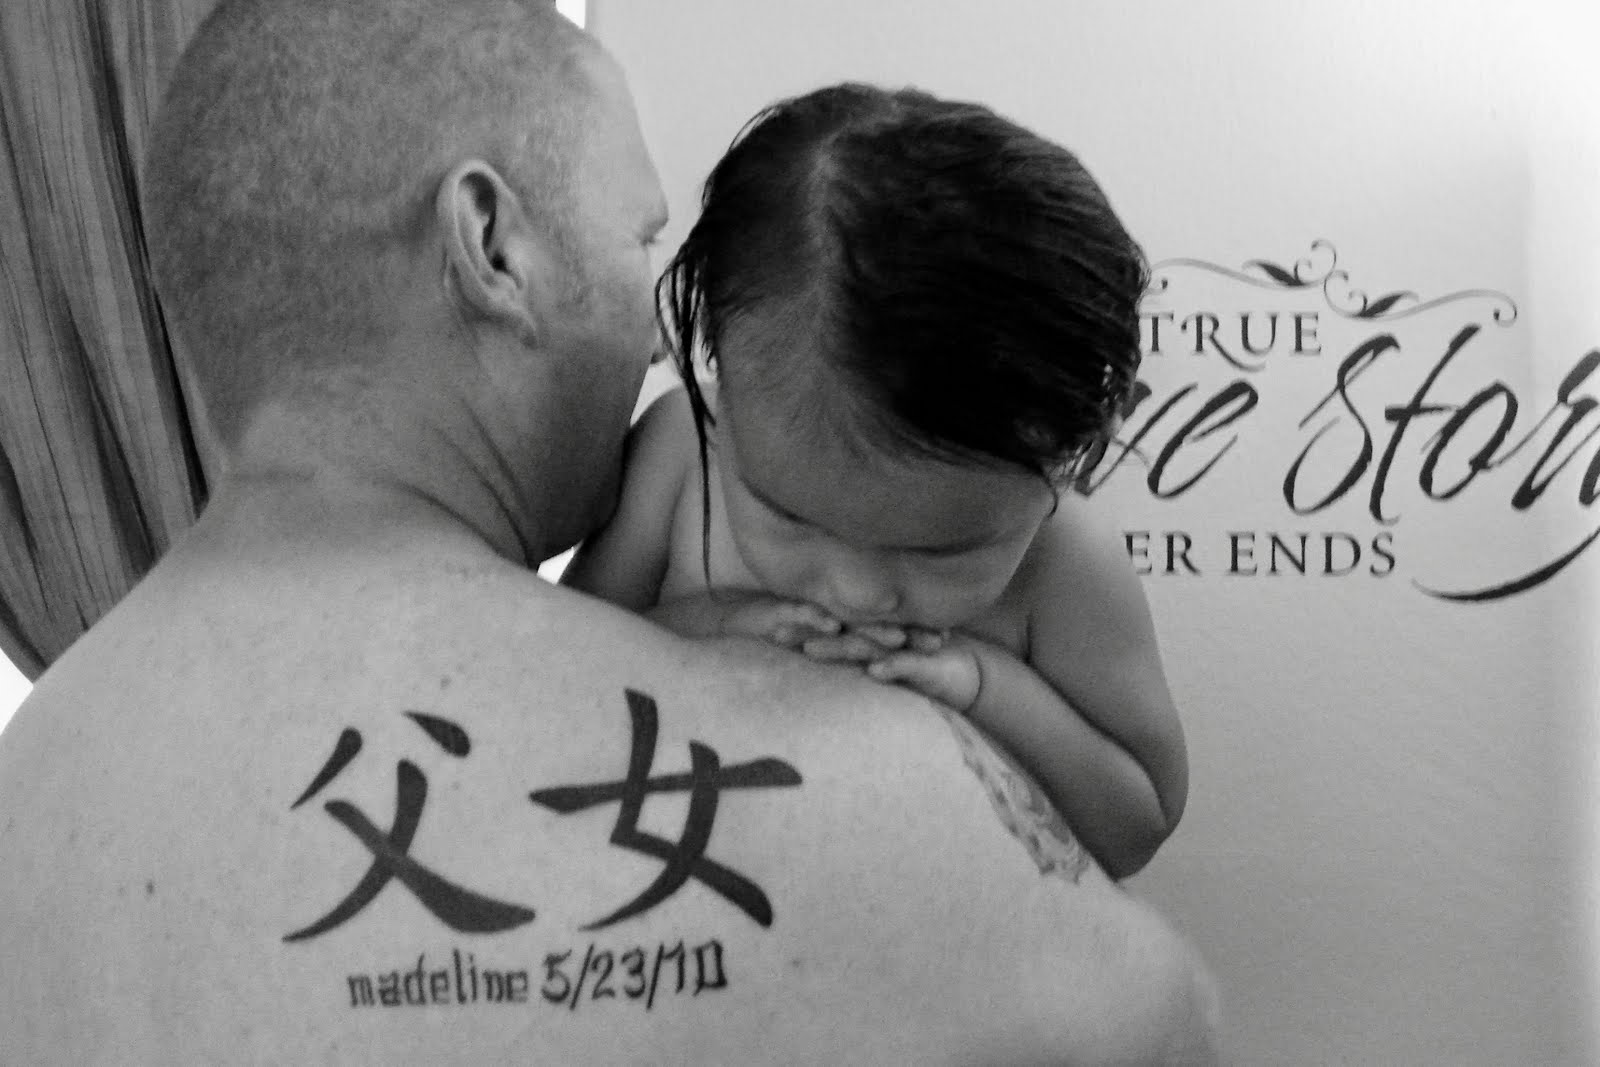 Mother daughter chinese symbol gallery symbol and sign ideas mother daughter tattoo designs best tattoo design ideas 2015 the mesmerizing mother daughter tattoo designs image biocorpaavc